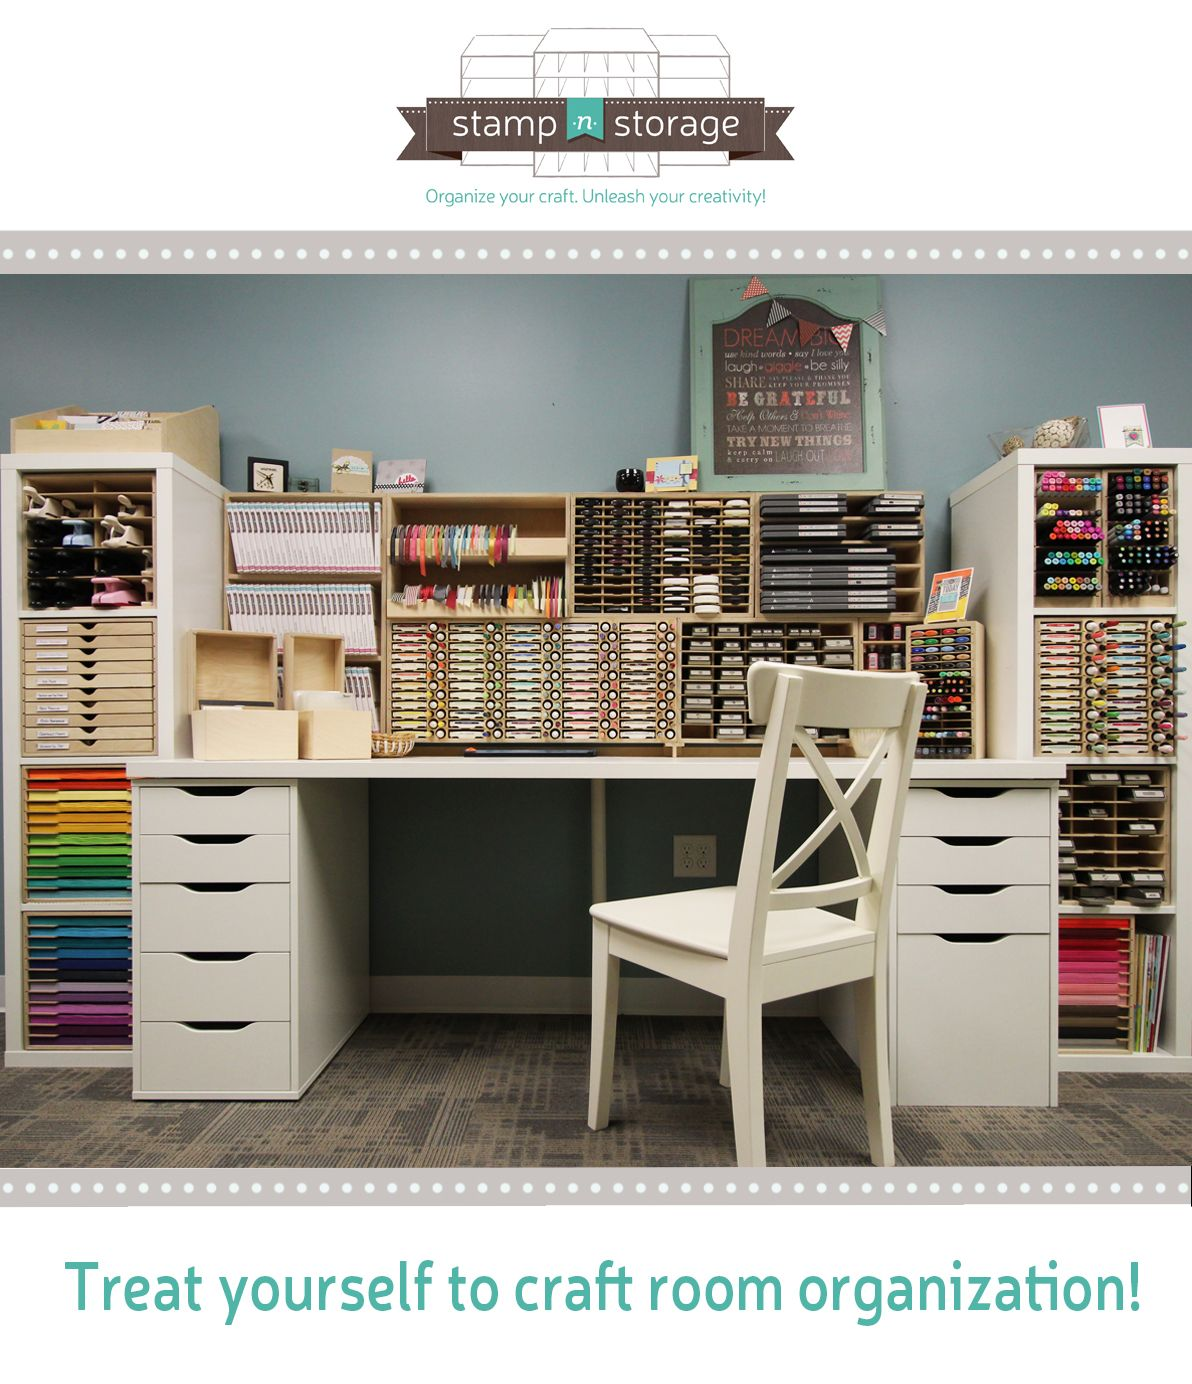 Ordinaire Treat Yourself To Craft Room Organization!